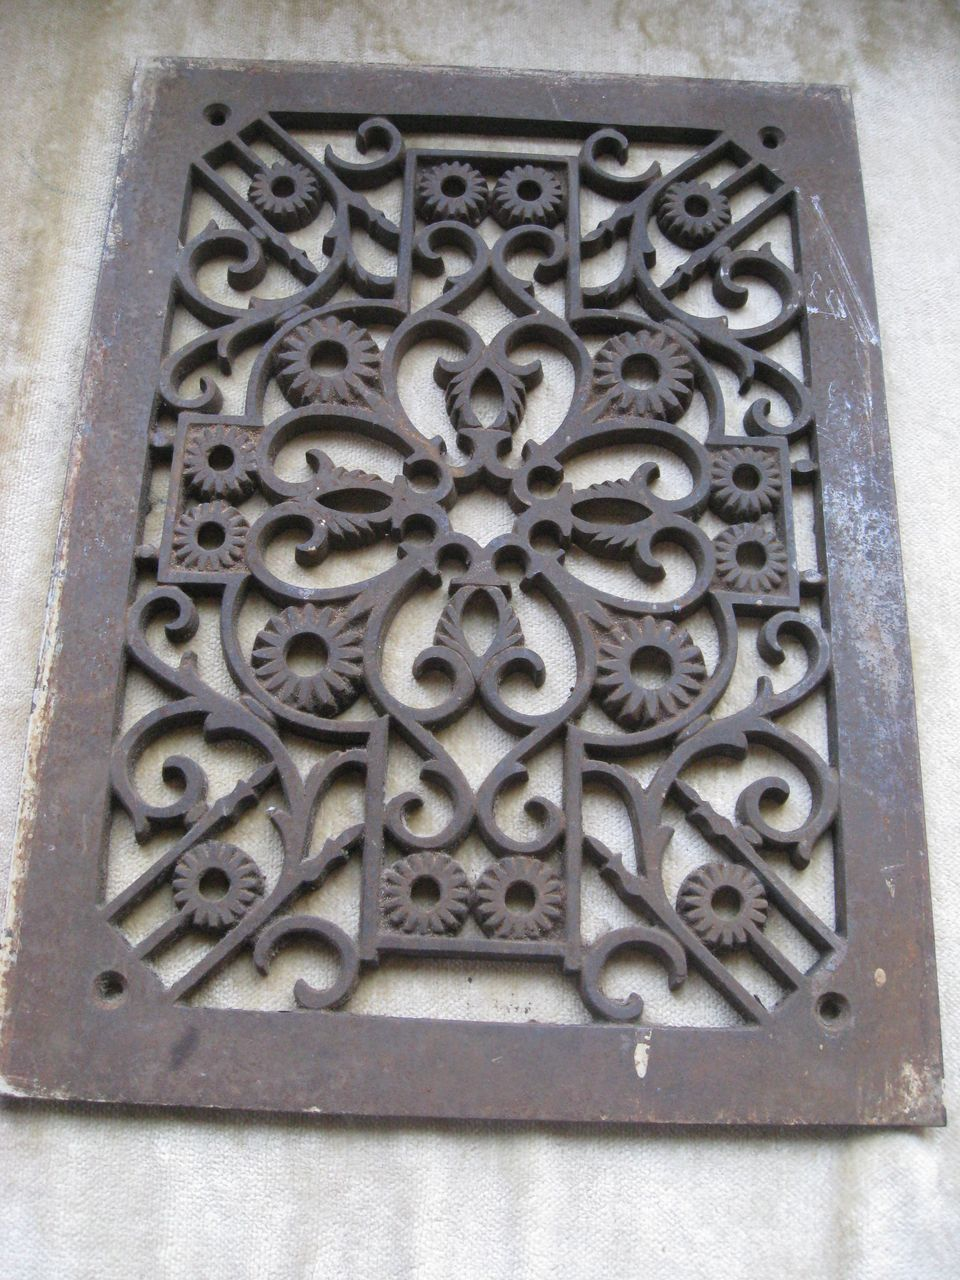 Architectural Antique Grate Object De Art Home Decor Renovations Architectural Antiques Cast Iron Decor Iron Decor